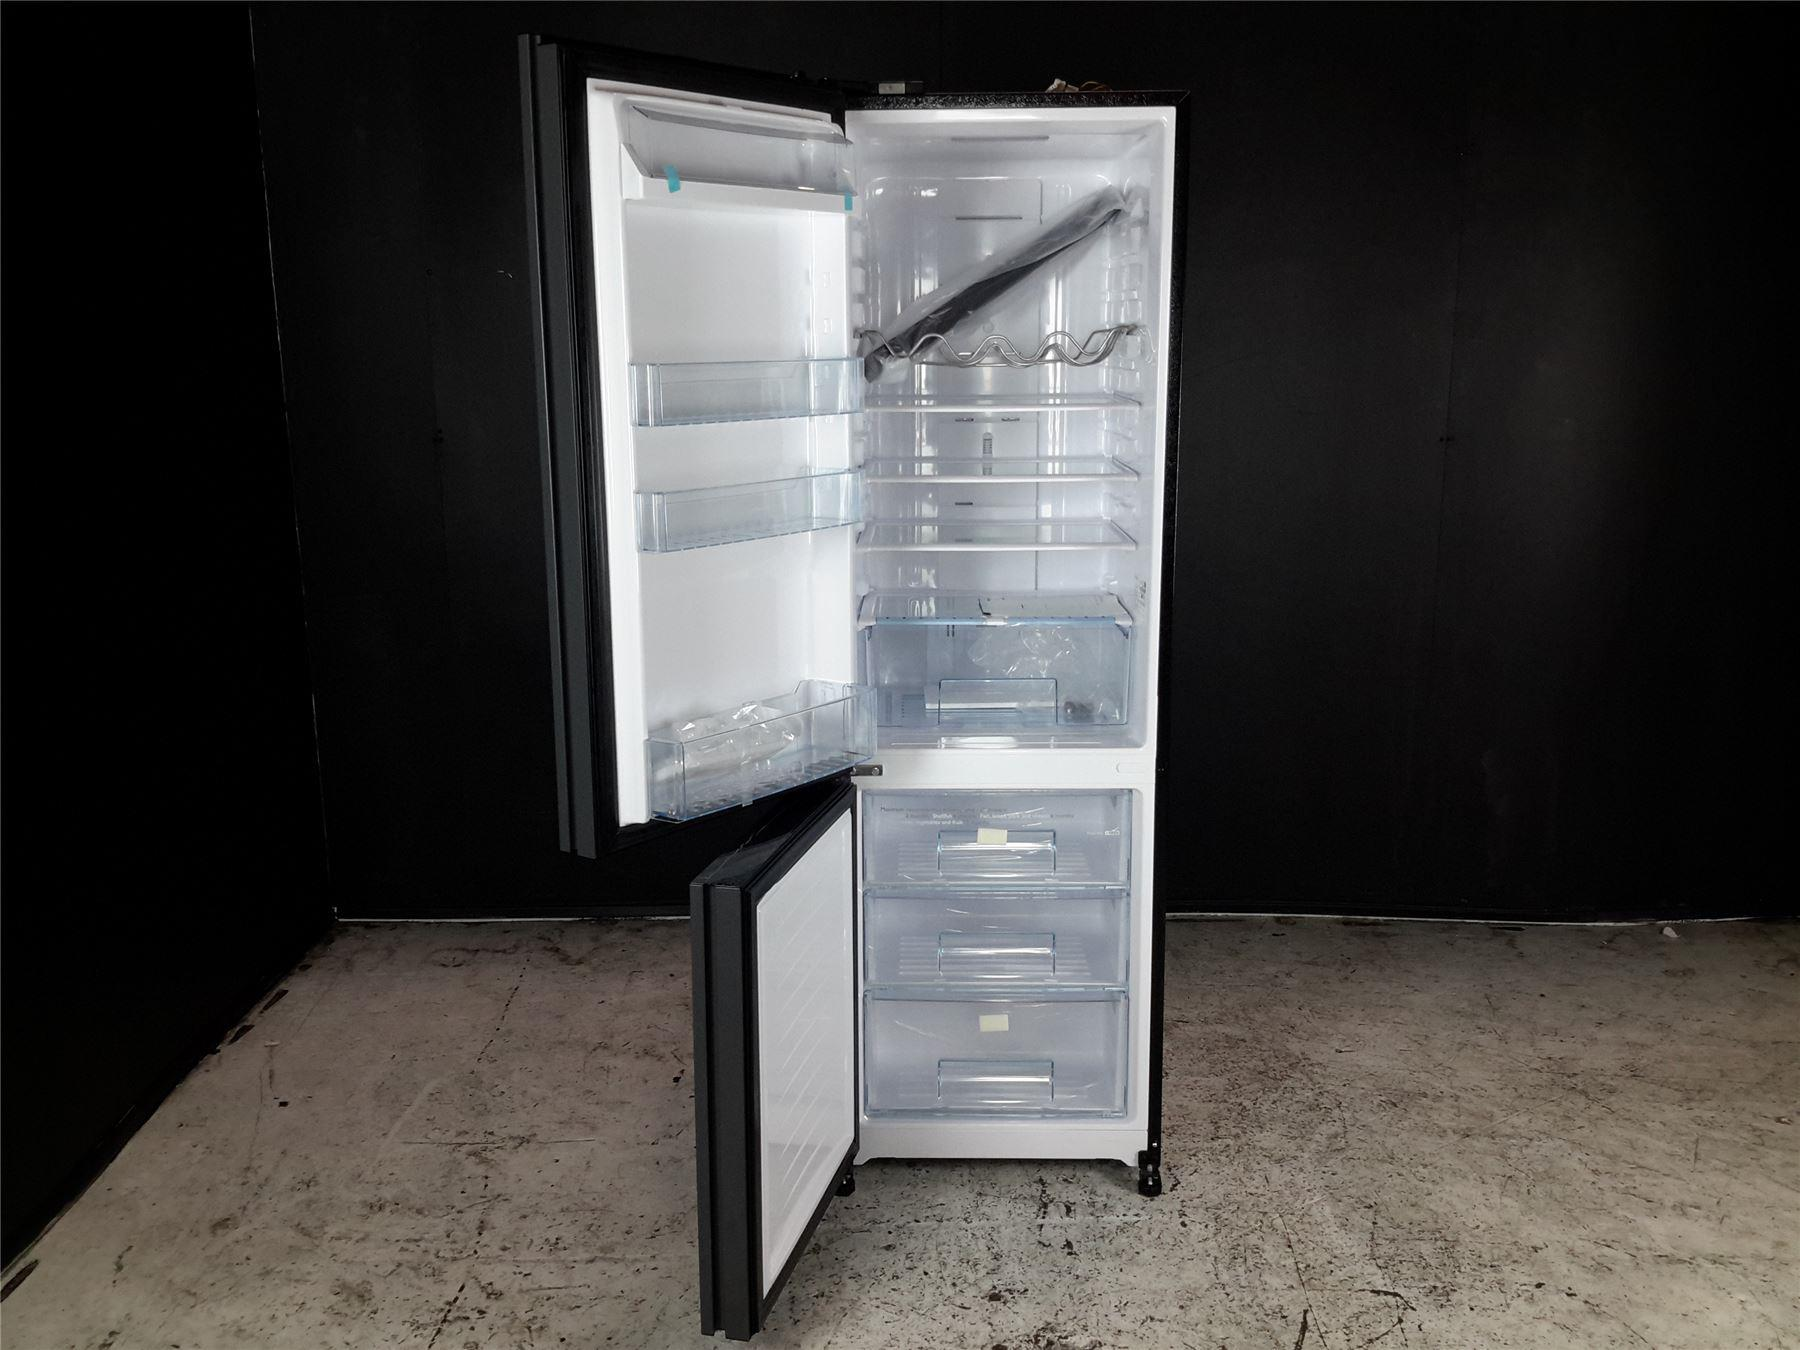 Range Style Cookers >> JLFSBK2001 Fridge Freezer, Black Glass | Online Store